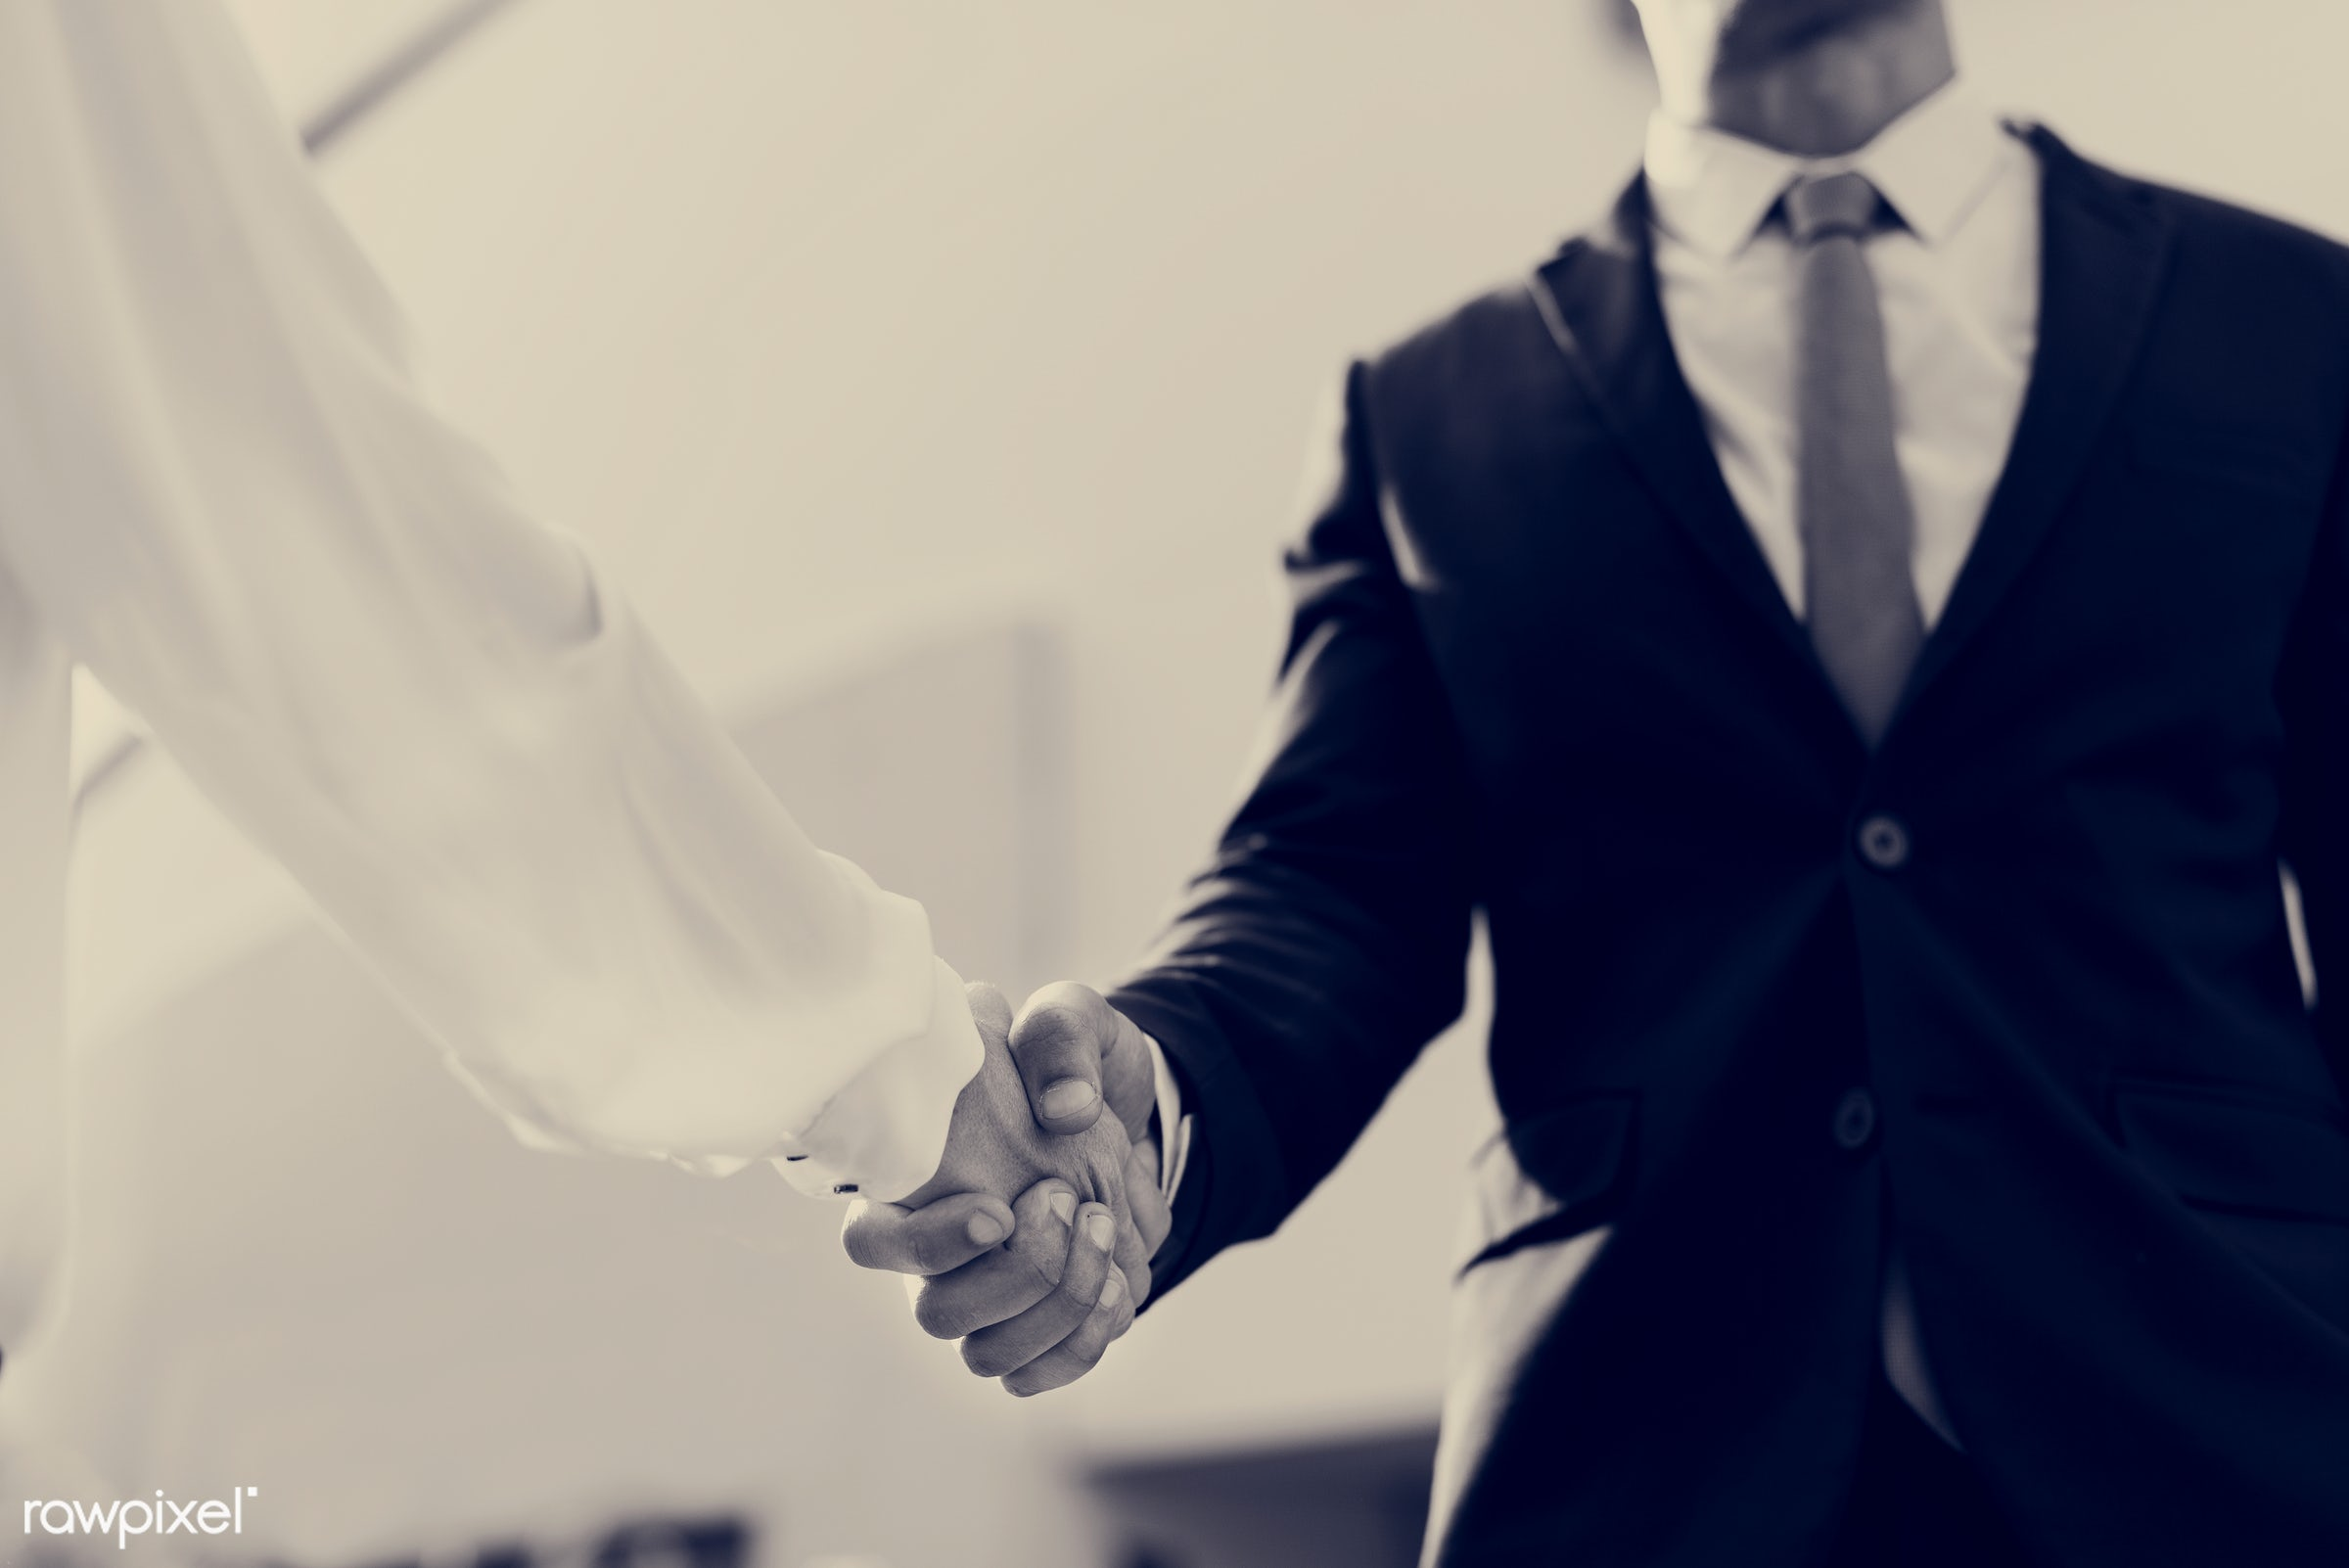 person, collaboration, first met, shake, corporation, people, business, nice to meet you, caucasian, cooperate, please, deal...